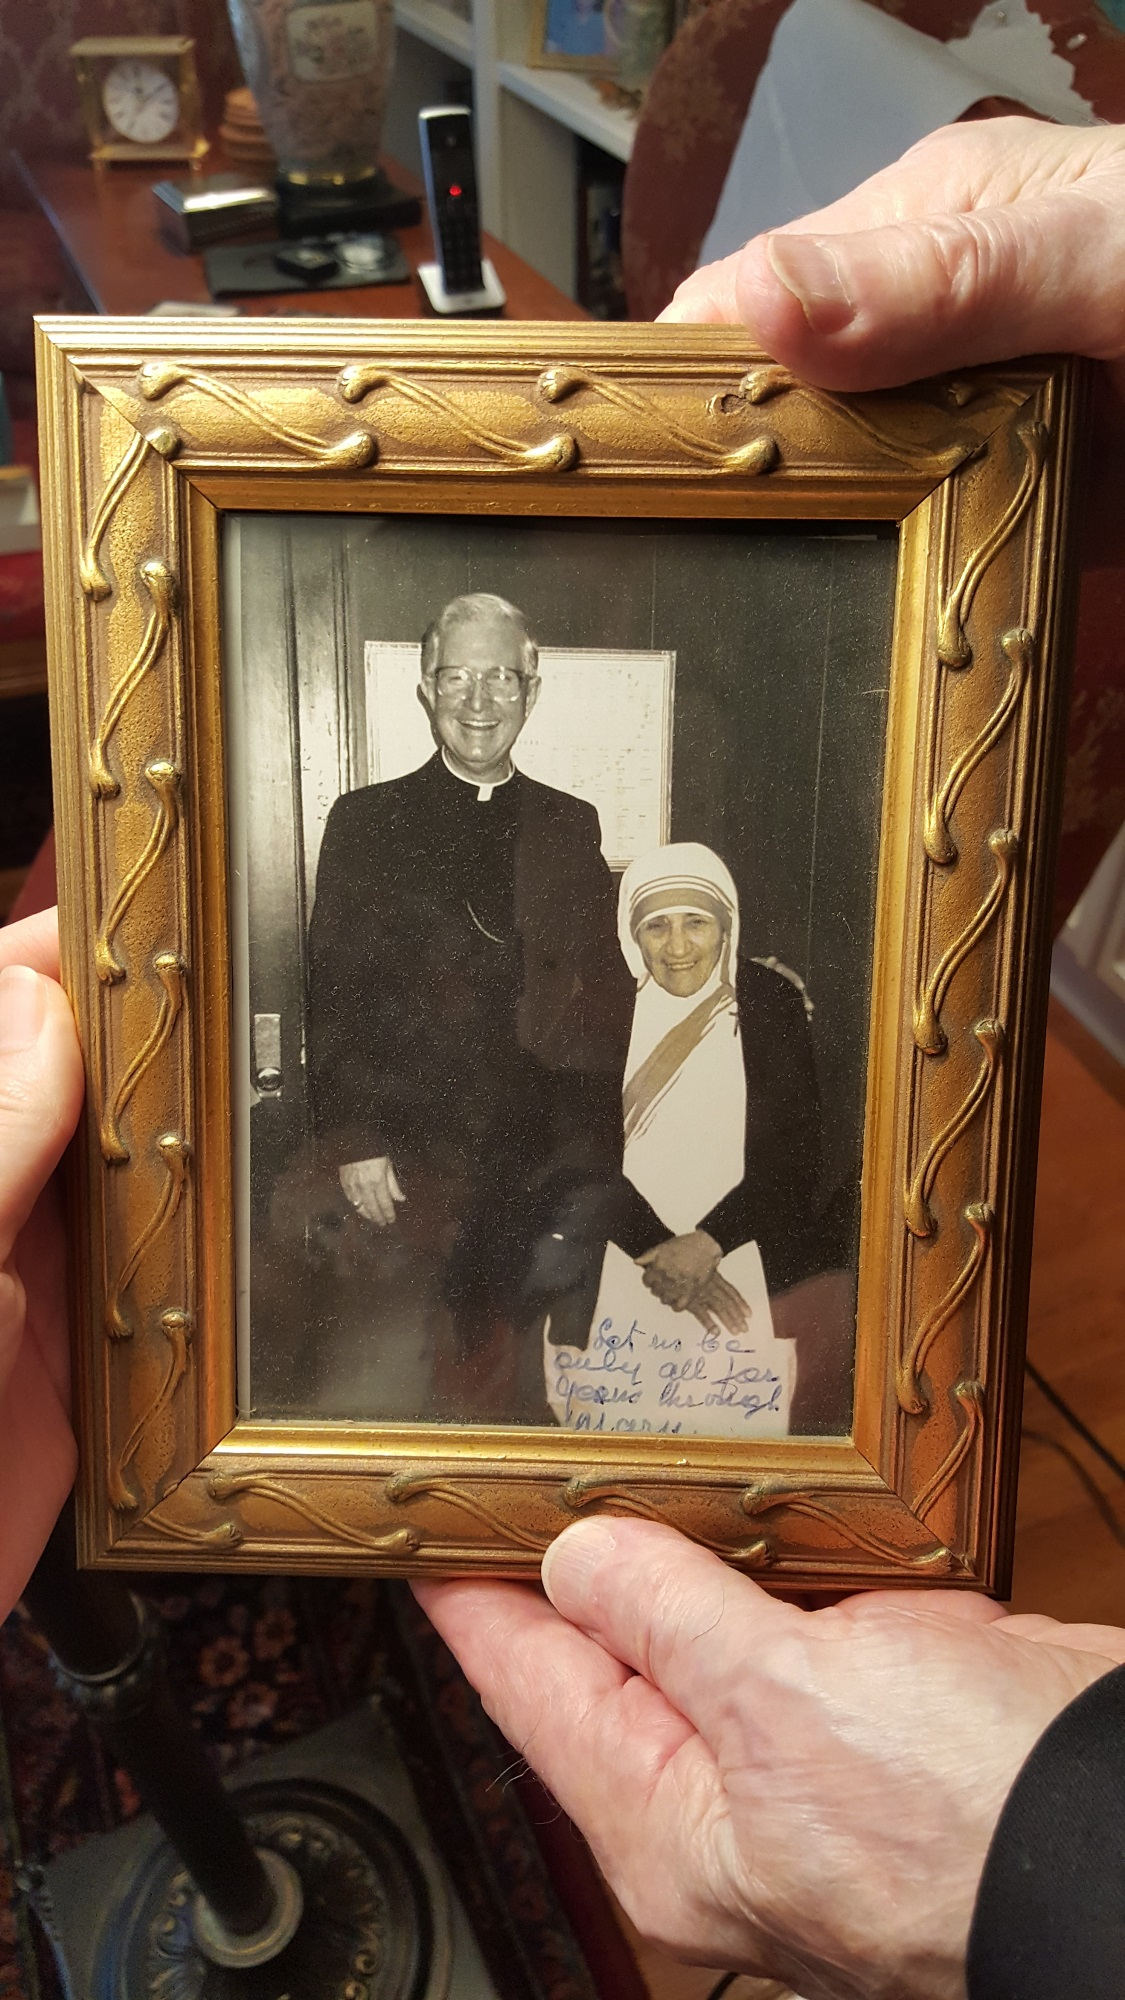 Bishop Curlin's autographed photo with Mother Teresa